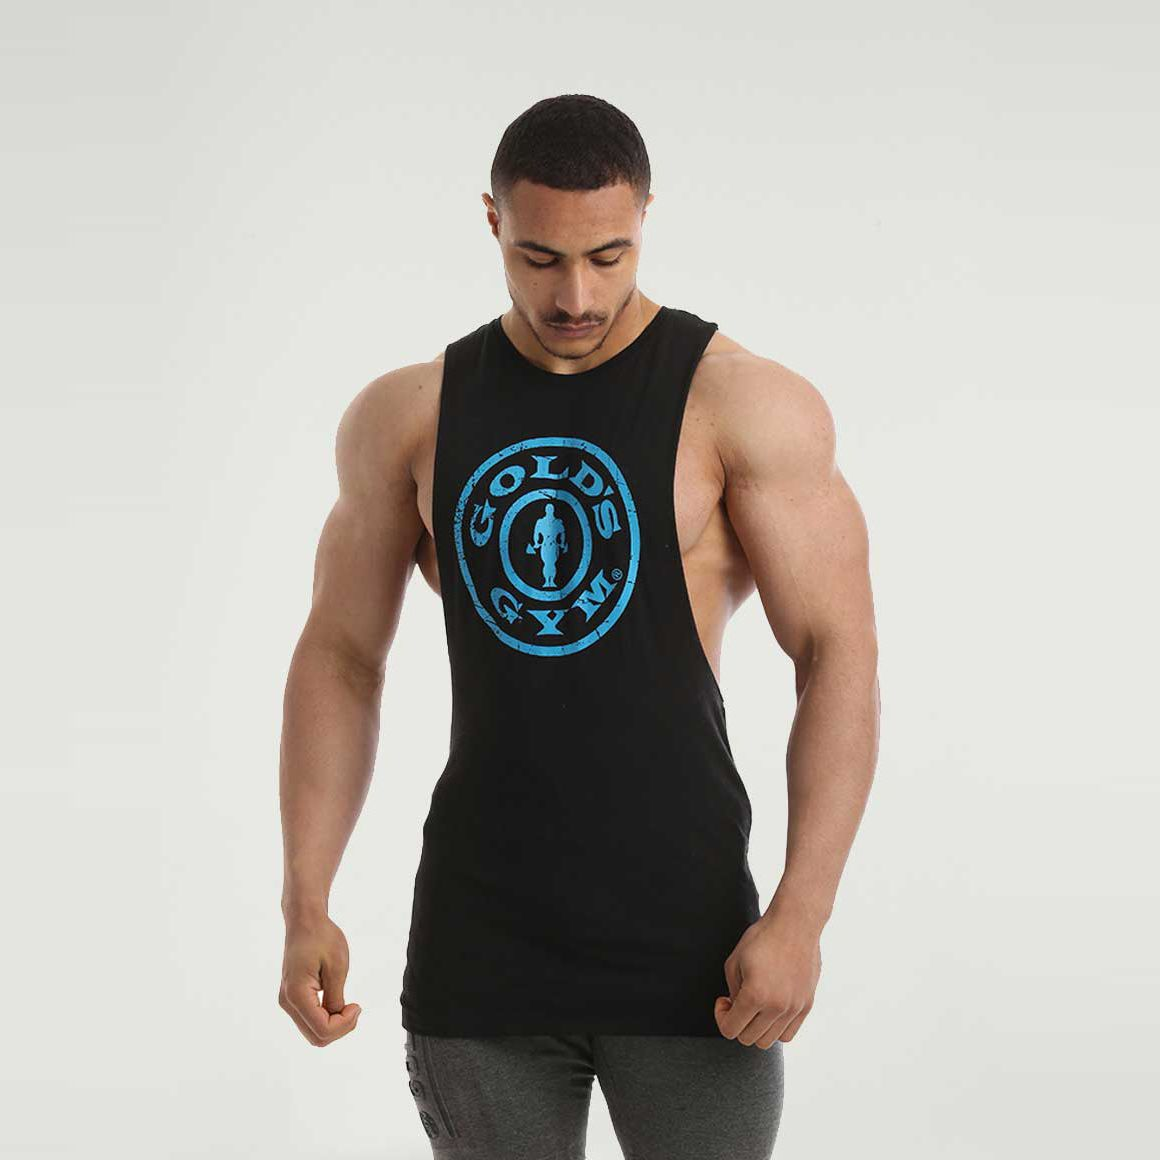 Men/'s New Gold/'s Gym Singlet Active Wear Tank Top OZ Seller